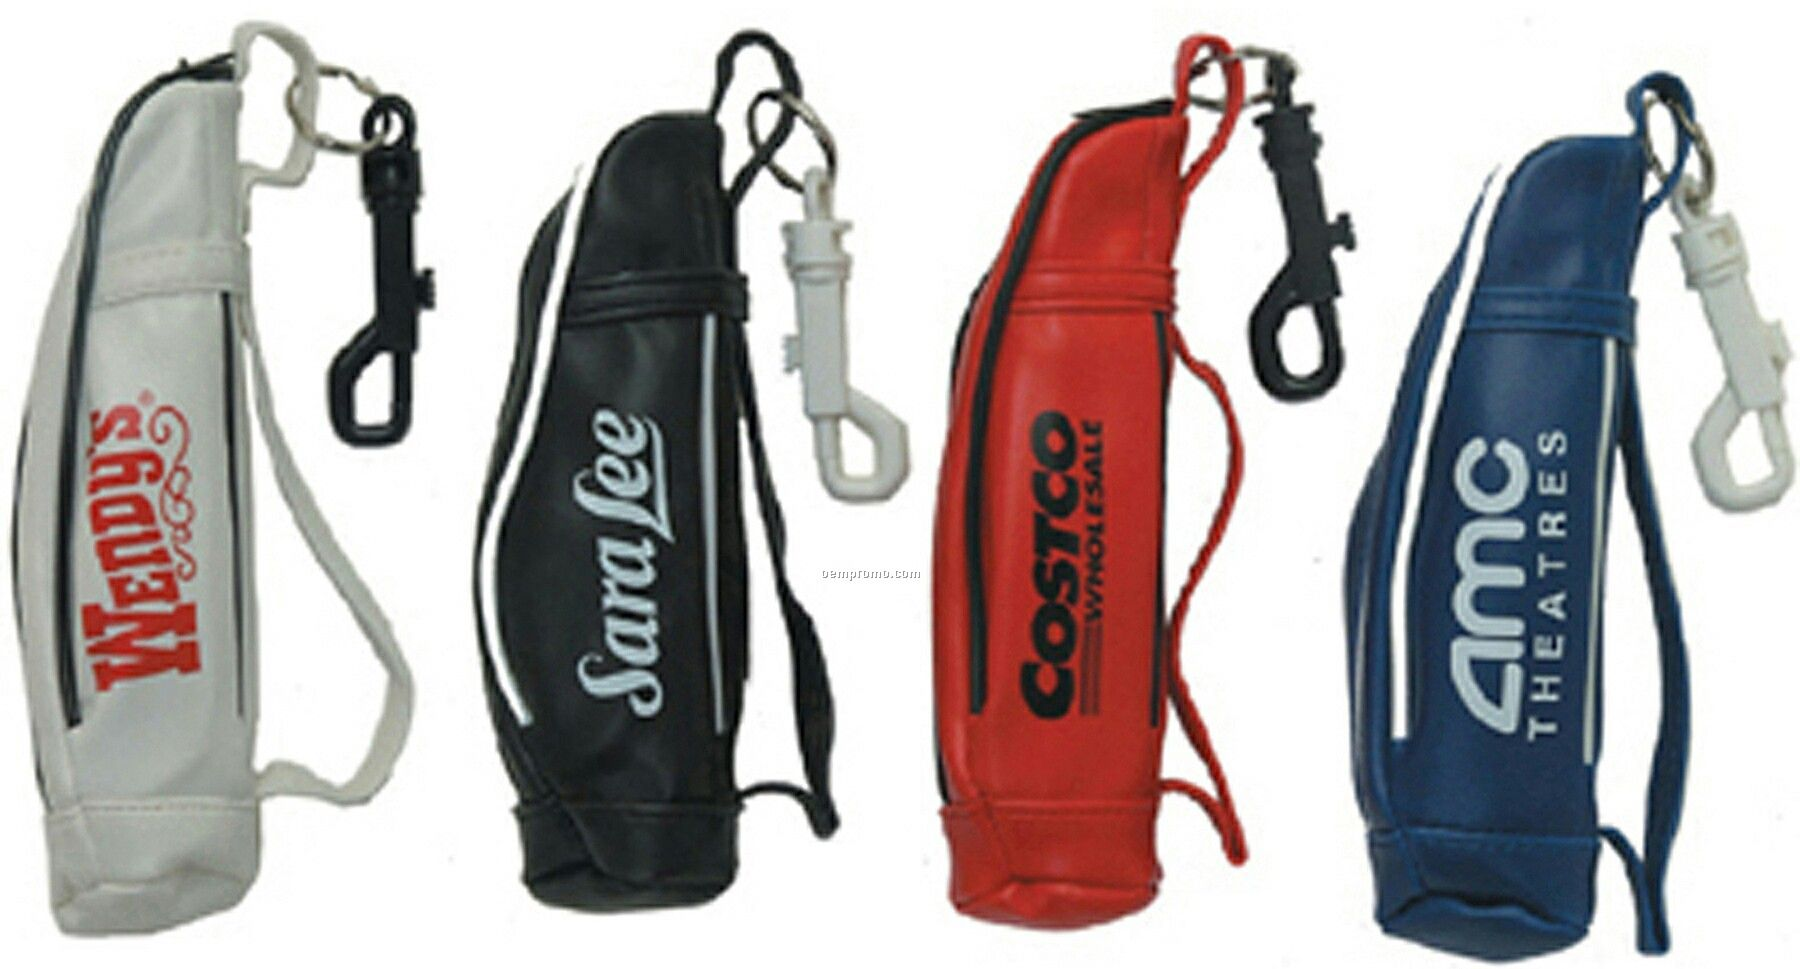 Mini Golf Bag, Holds Up To Three Golf Balls--7 Day Production